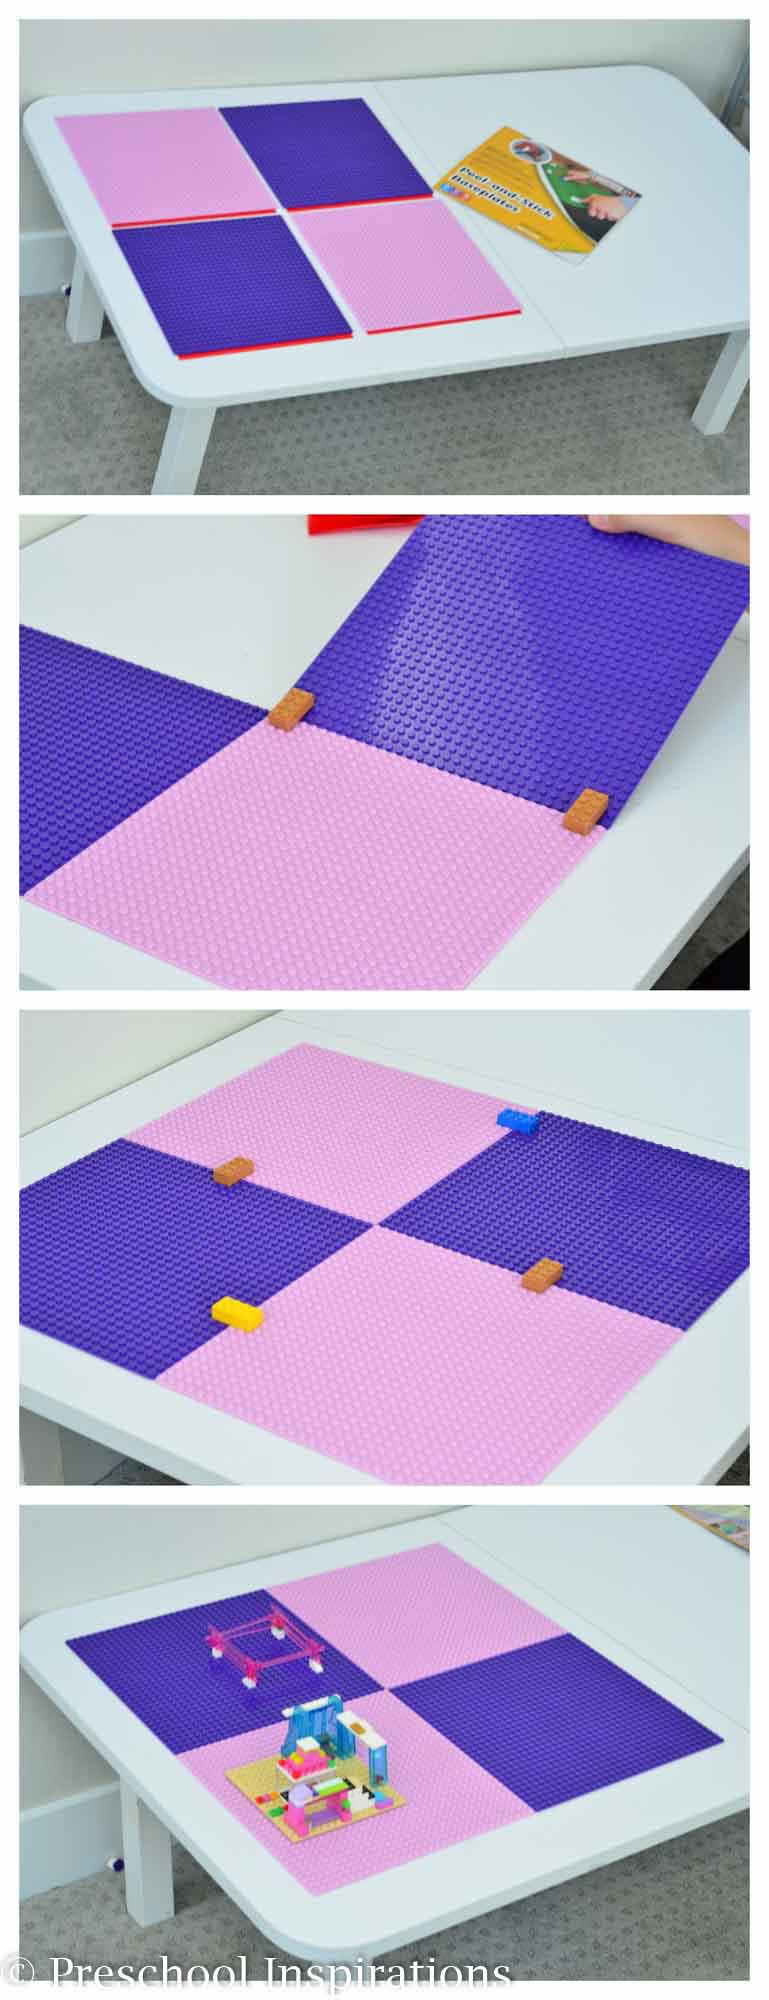 Make a Lego table with this easy Lego baseplates that peel and stick like a giant sticker. This is perfect for a girl's dream Lego table!